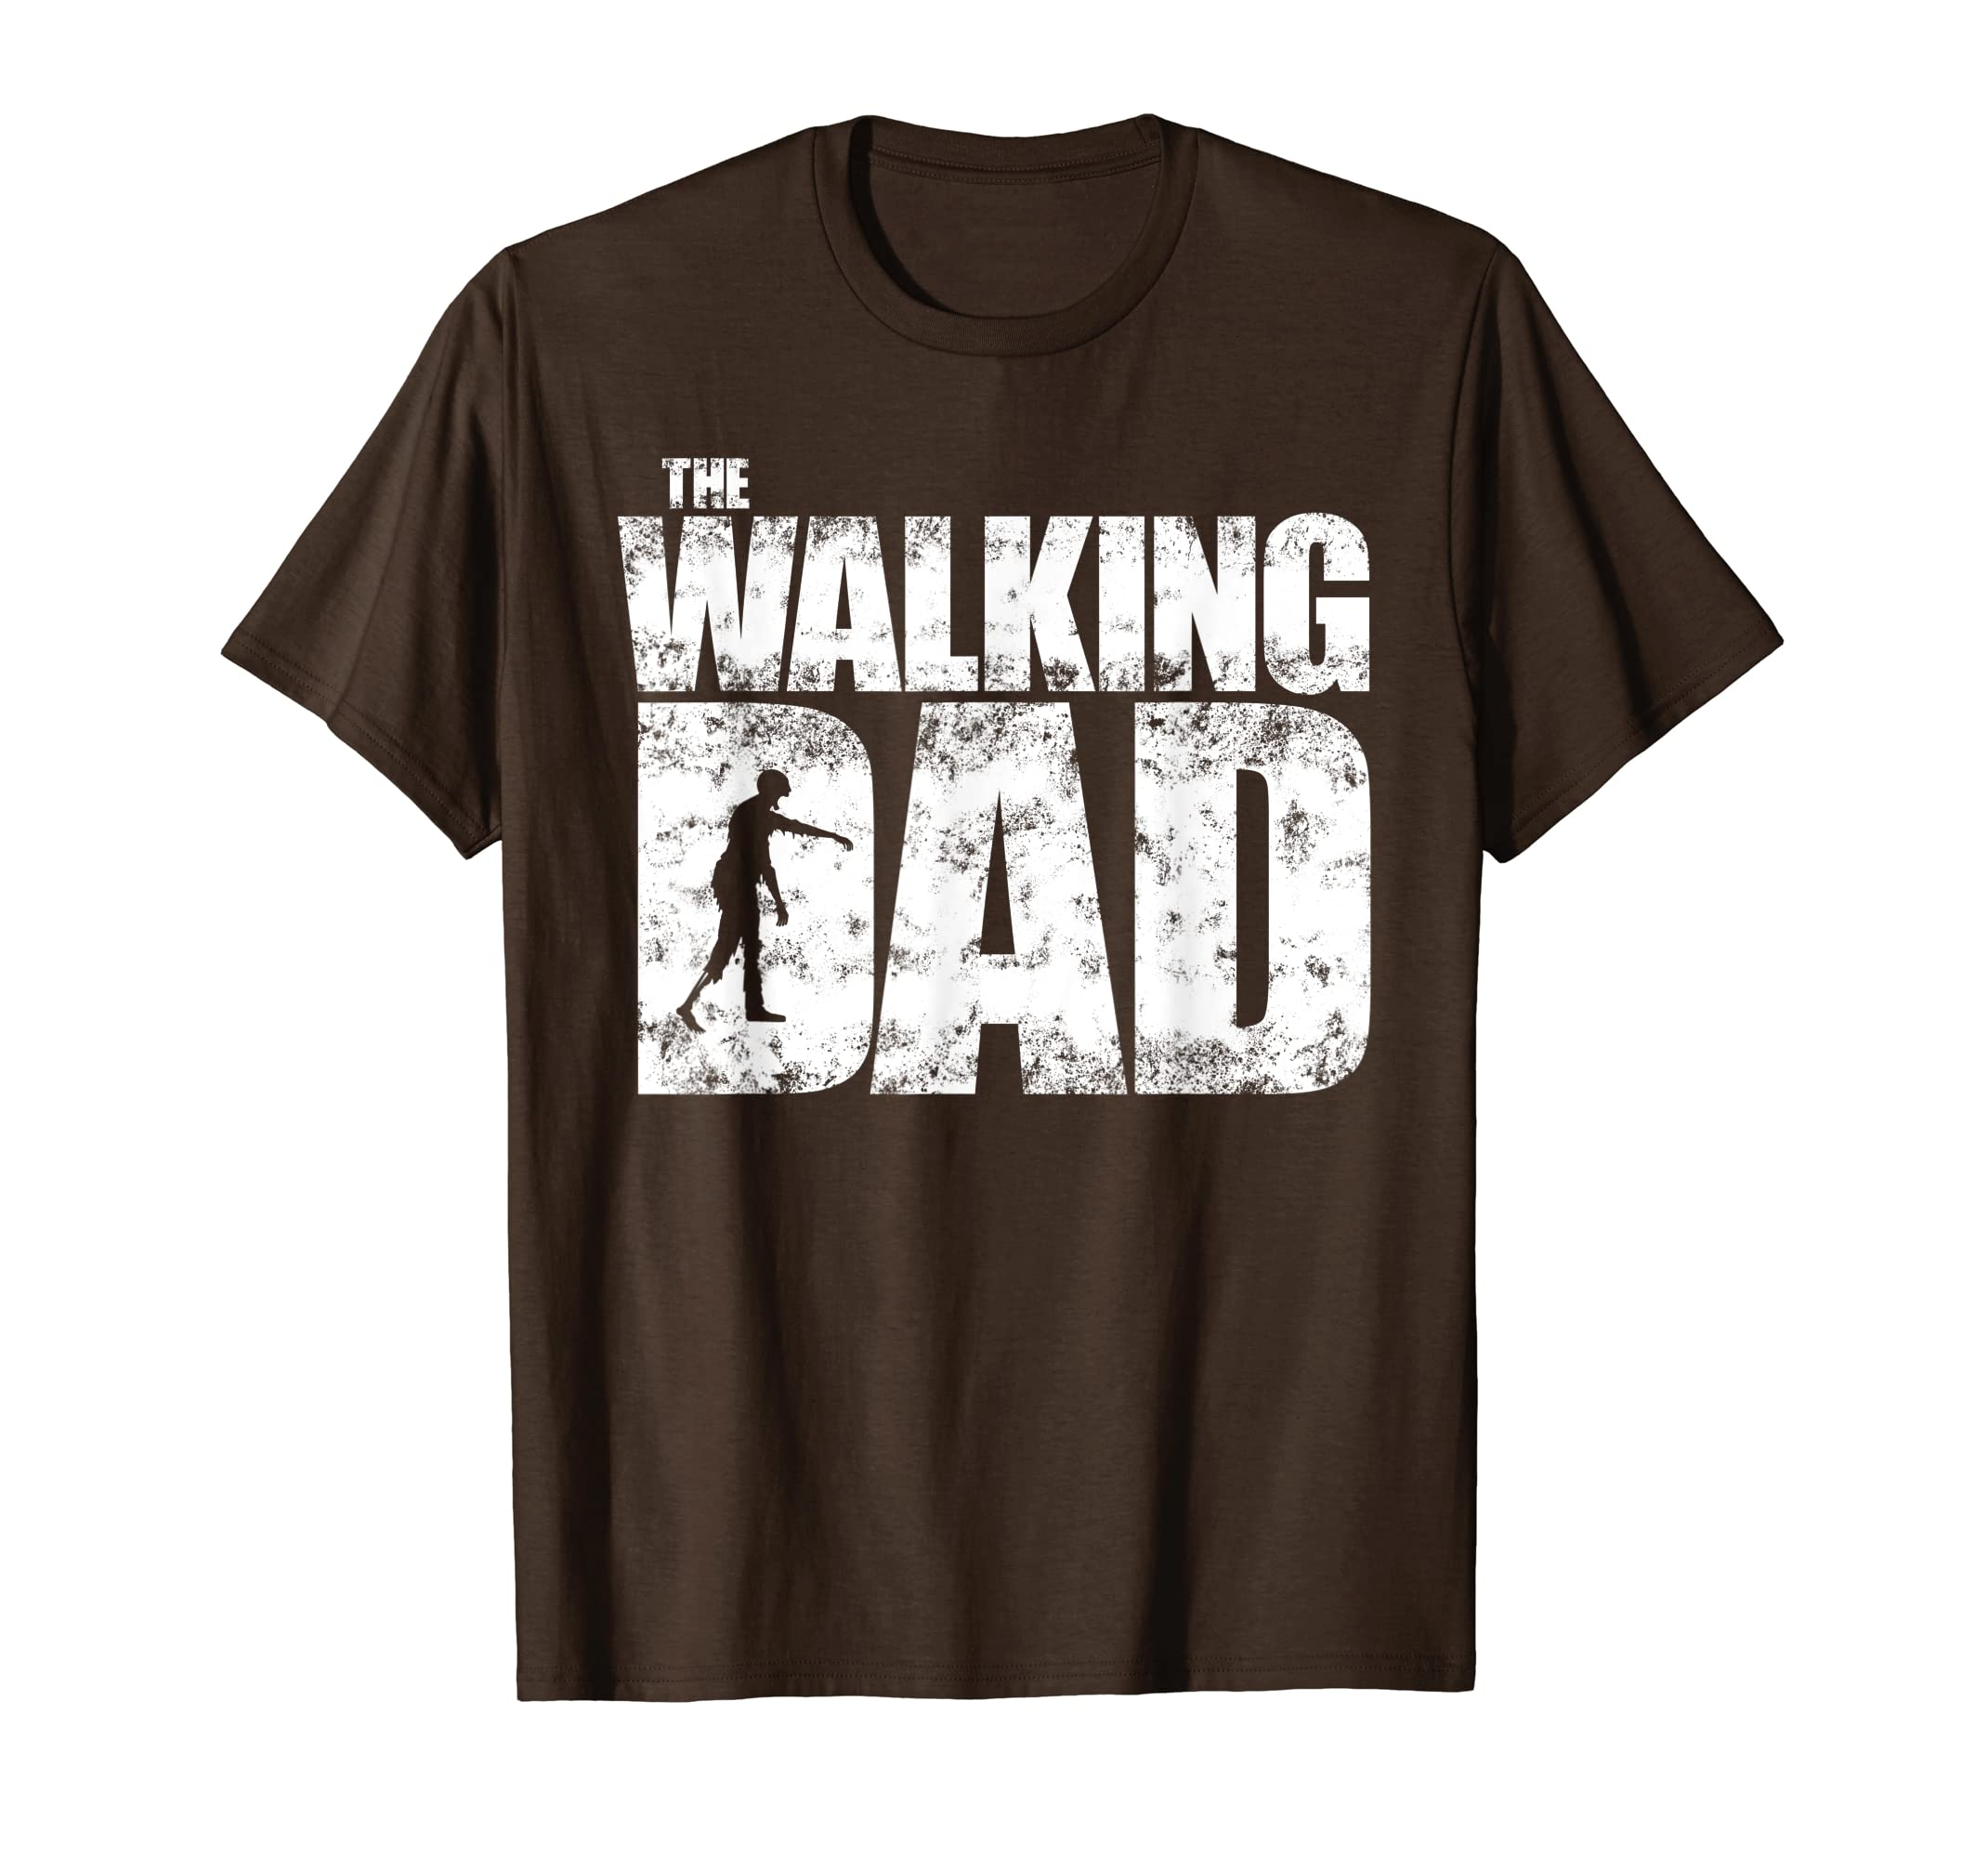 6c783d3b3 Amazon.com: Funny Halloween Shirts for Dad Father Men Spooky Scary Gift:  Clothing